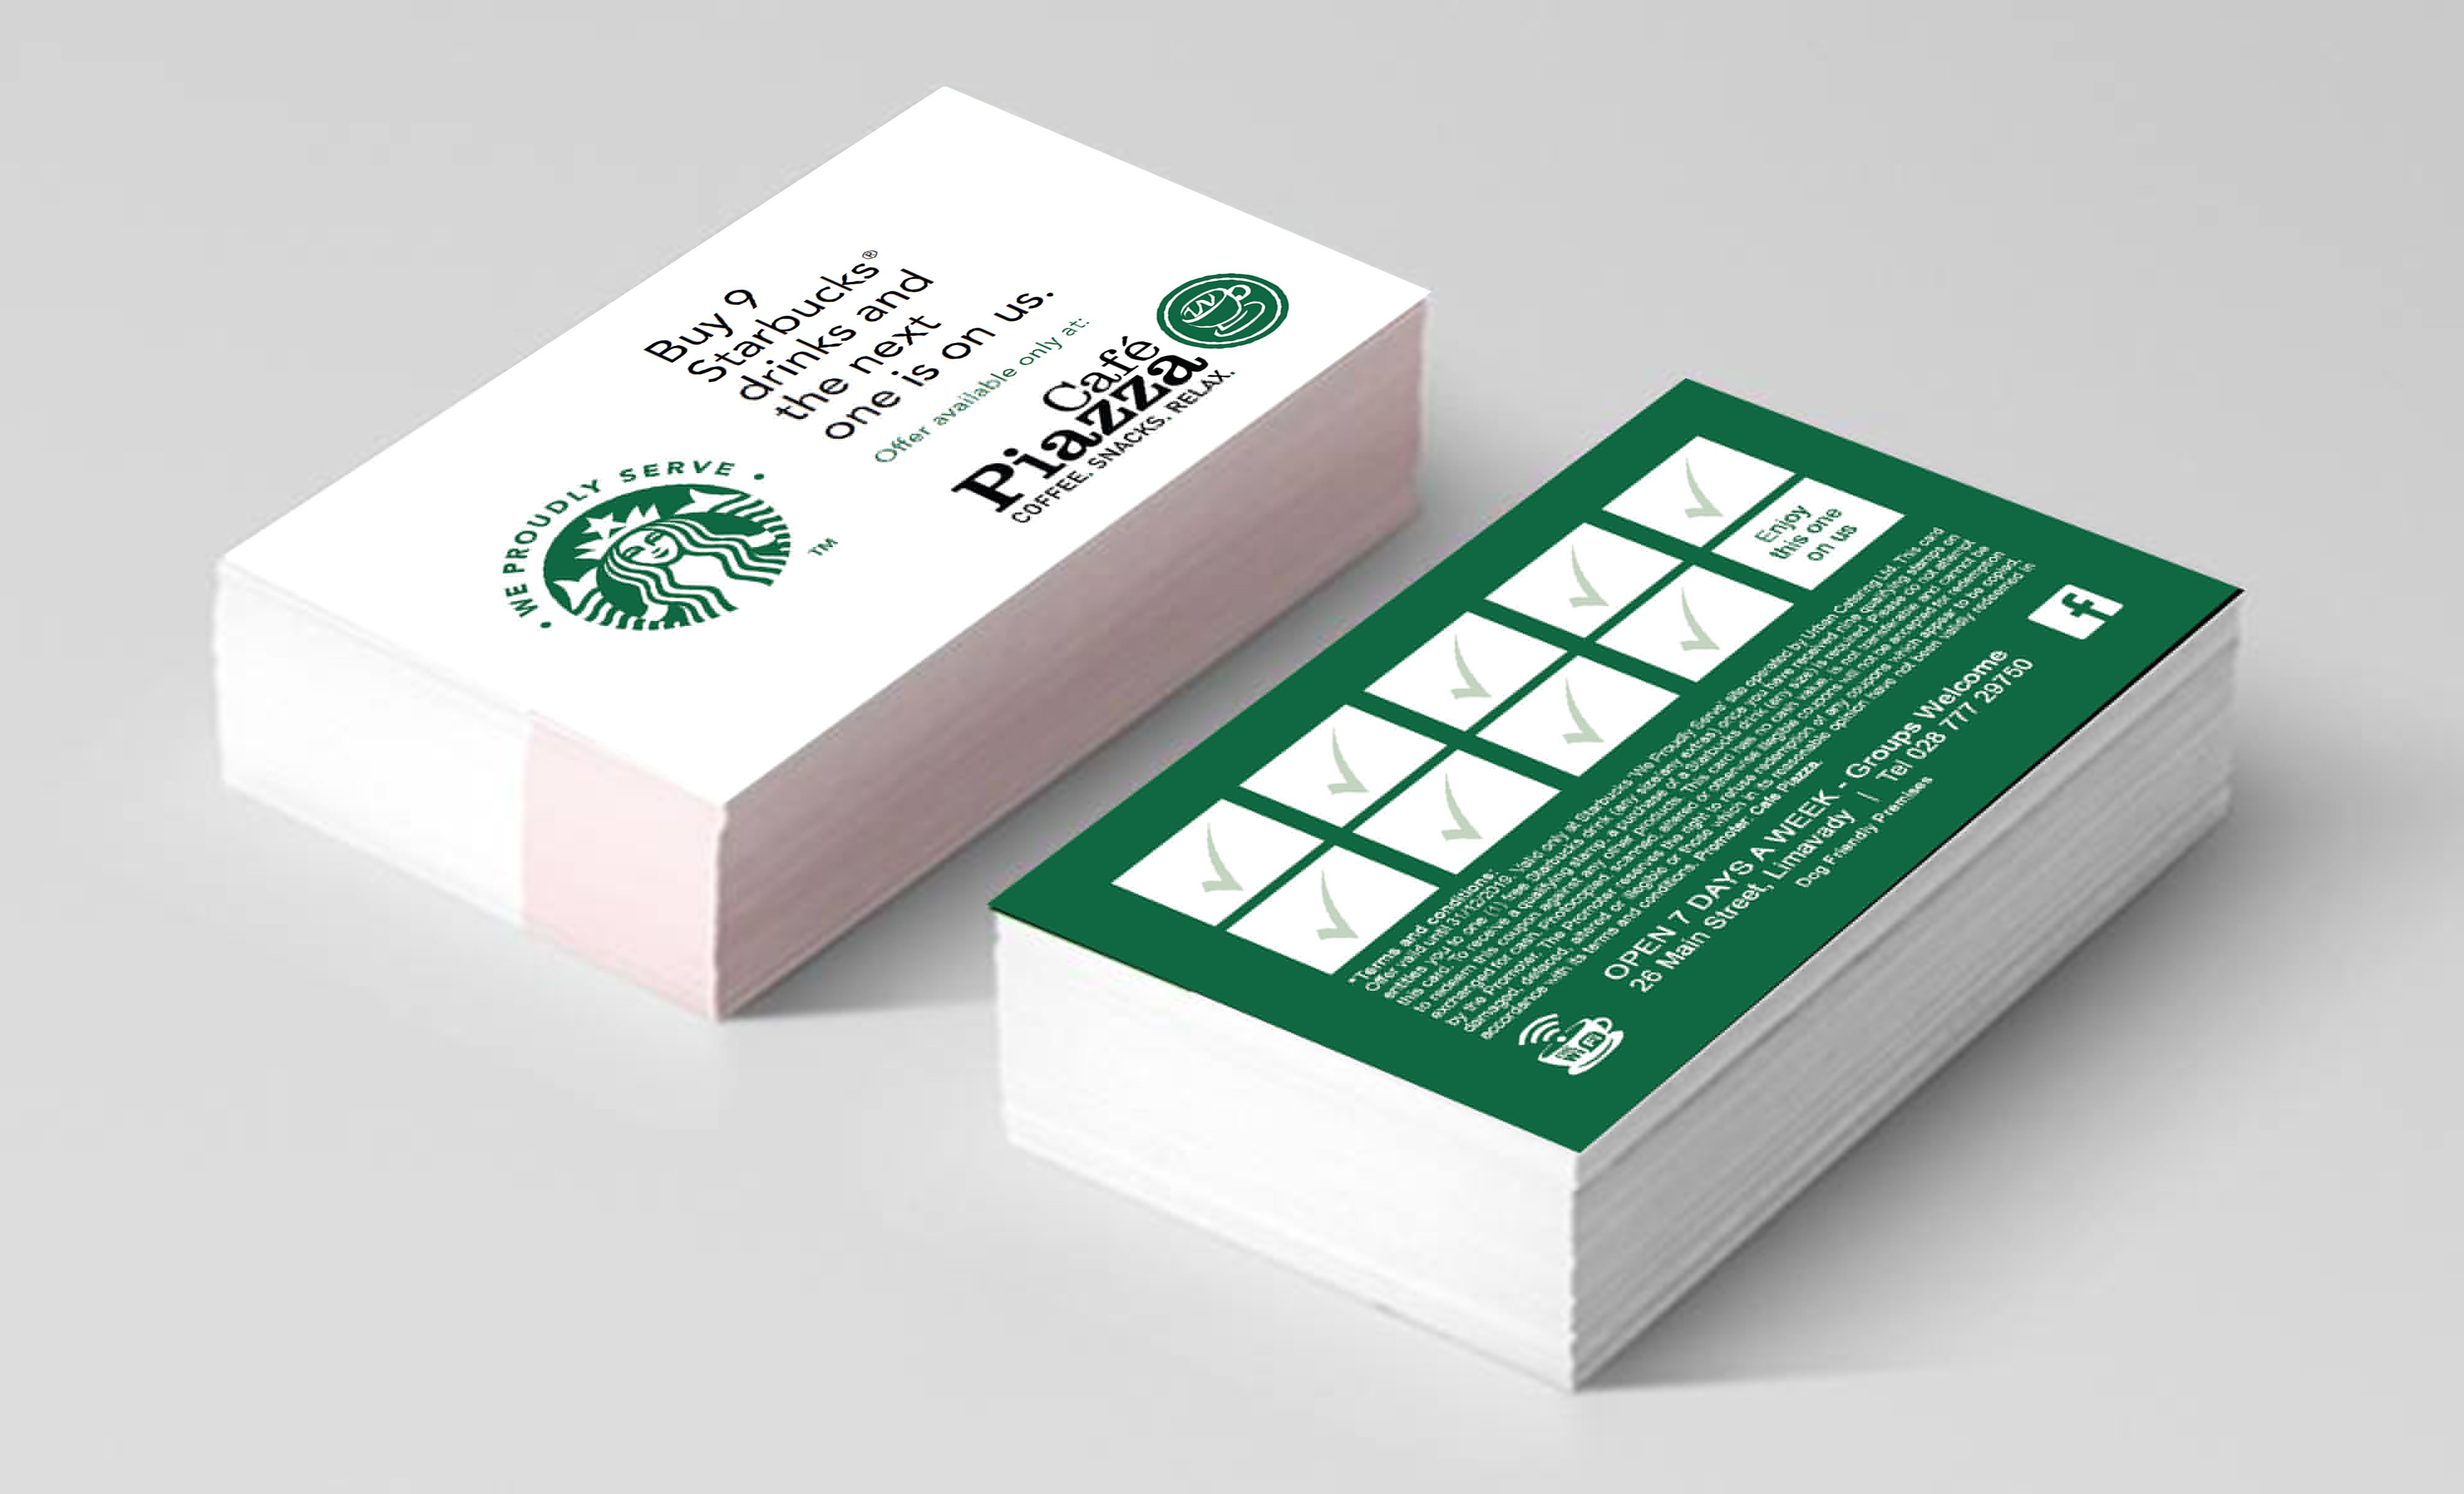 Cafe Piazza Cards